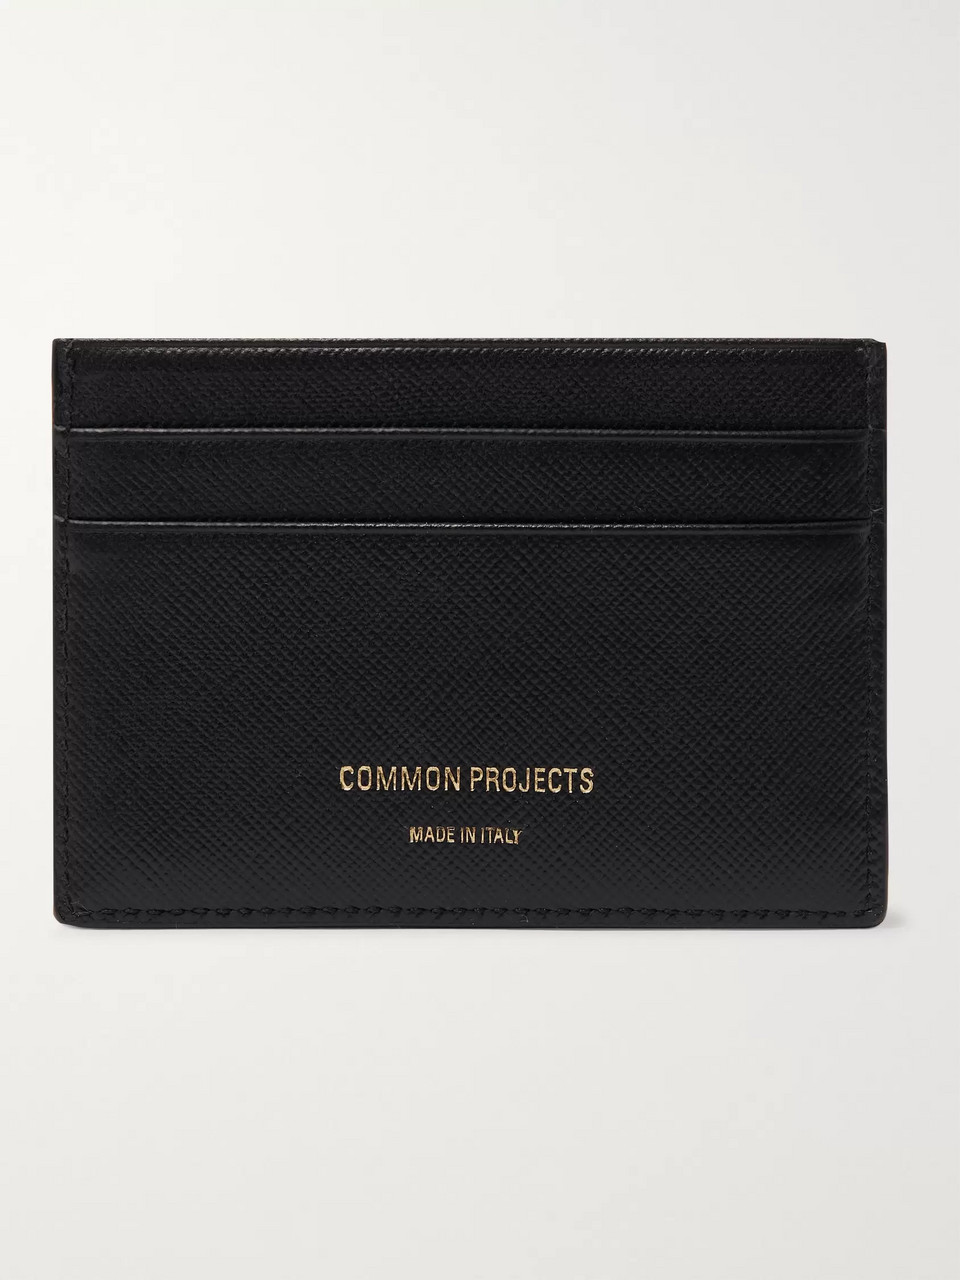 Common Projects Cross-Grain Leather Cardholder